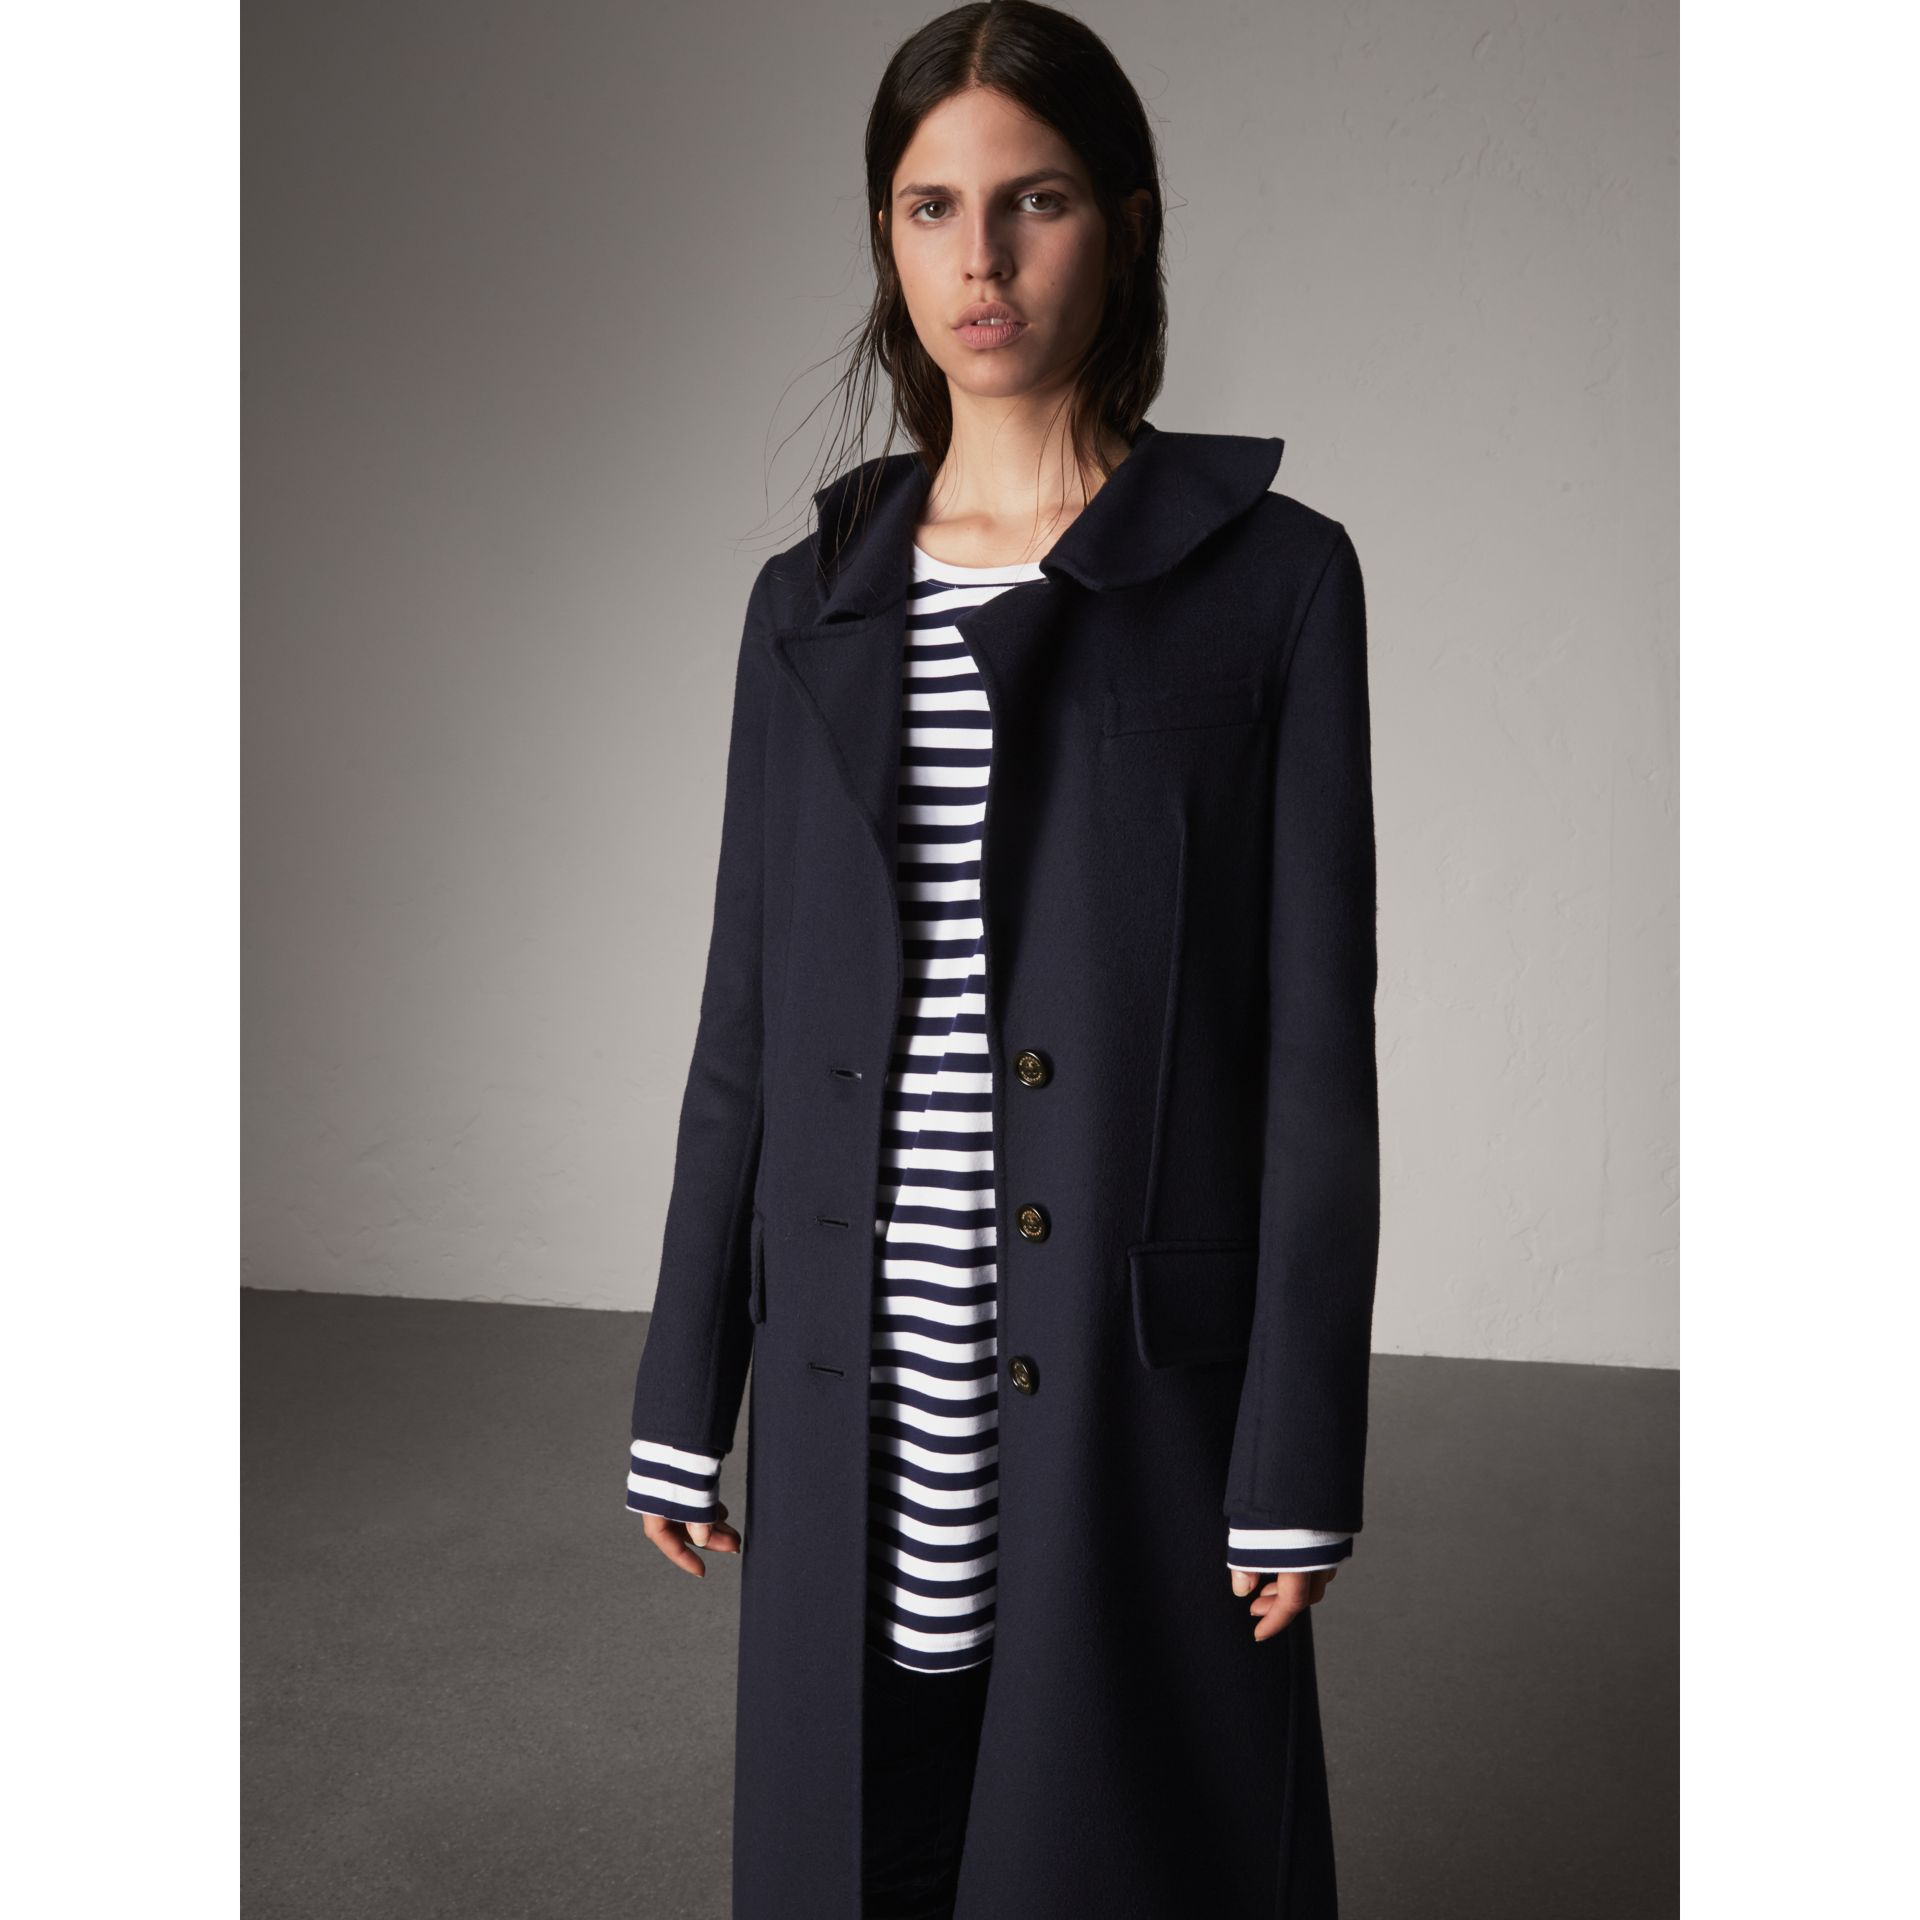 Ruffled Collar Wool Cashmere Coat in Navy - Women | Burberry Singapore - gallery image 6